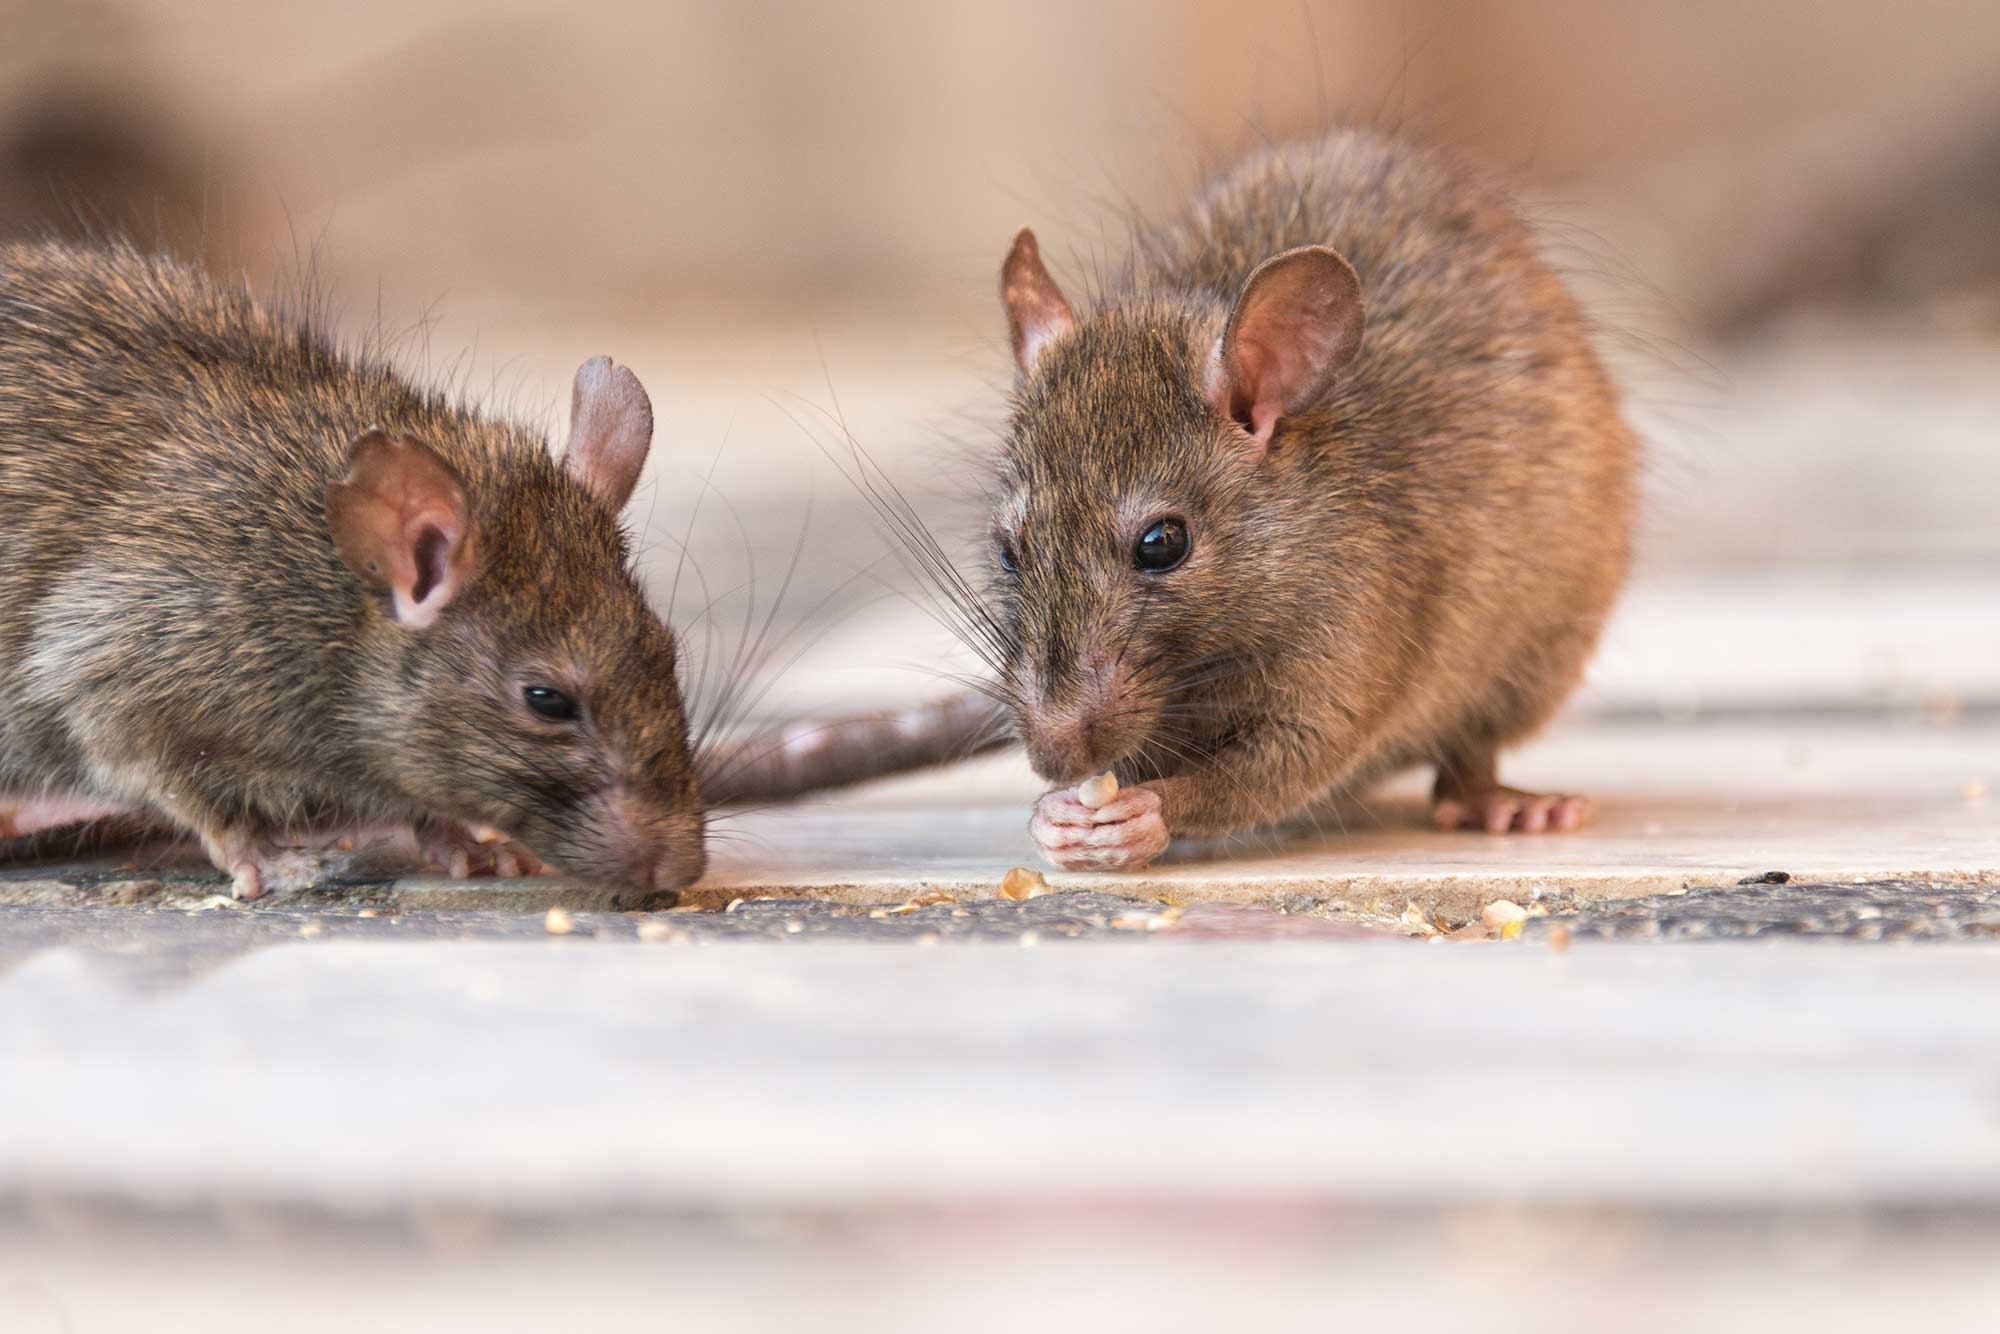 Rodent Control Service in Ahmedabad, Gujarat, India